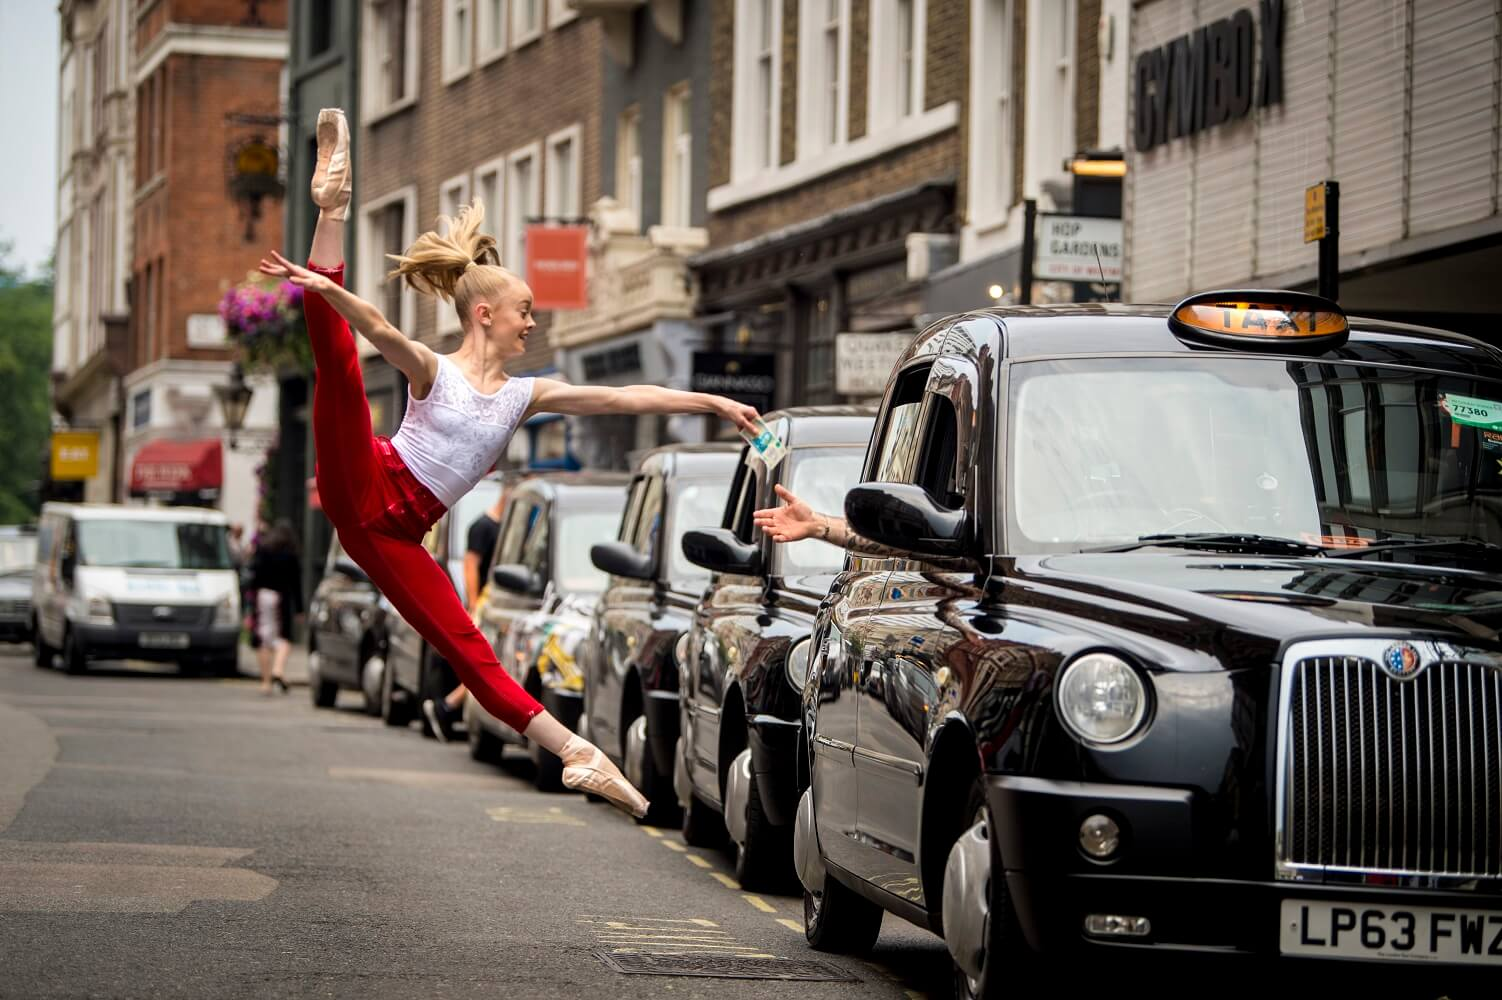 Dancer leaping while paying a London black cab driver